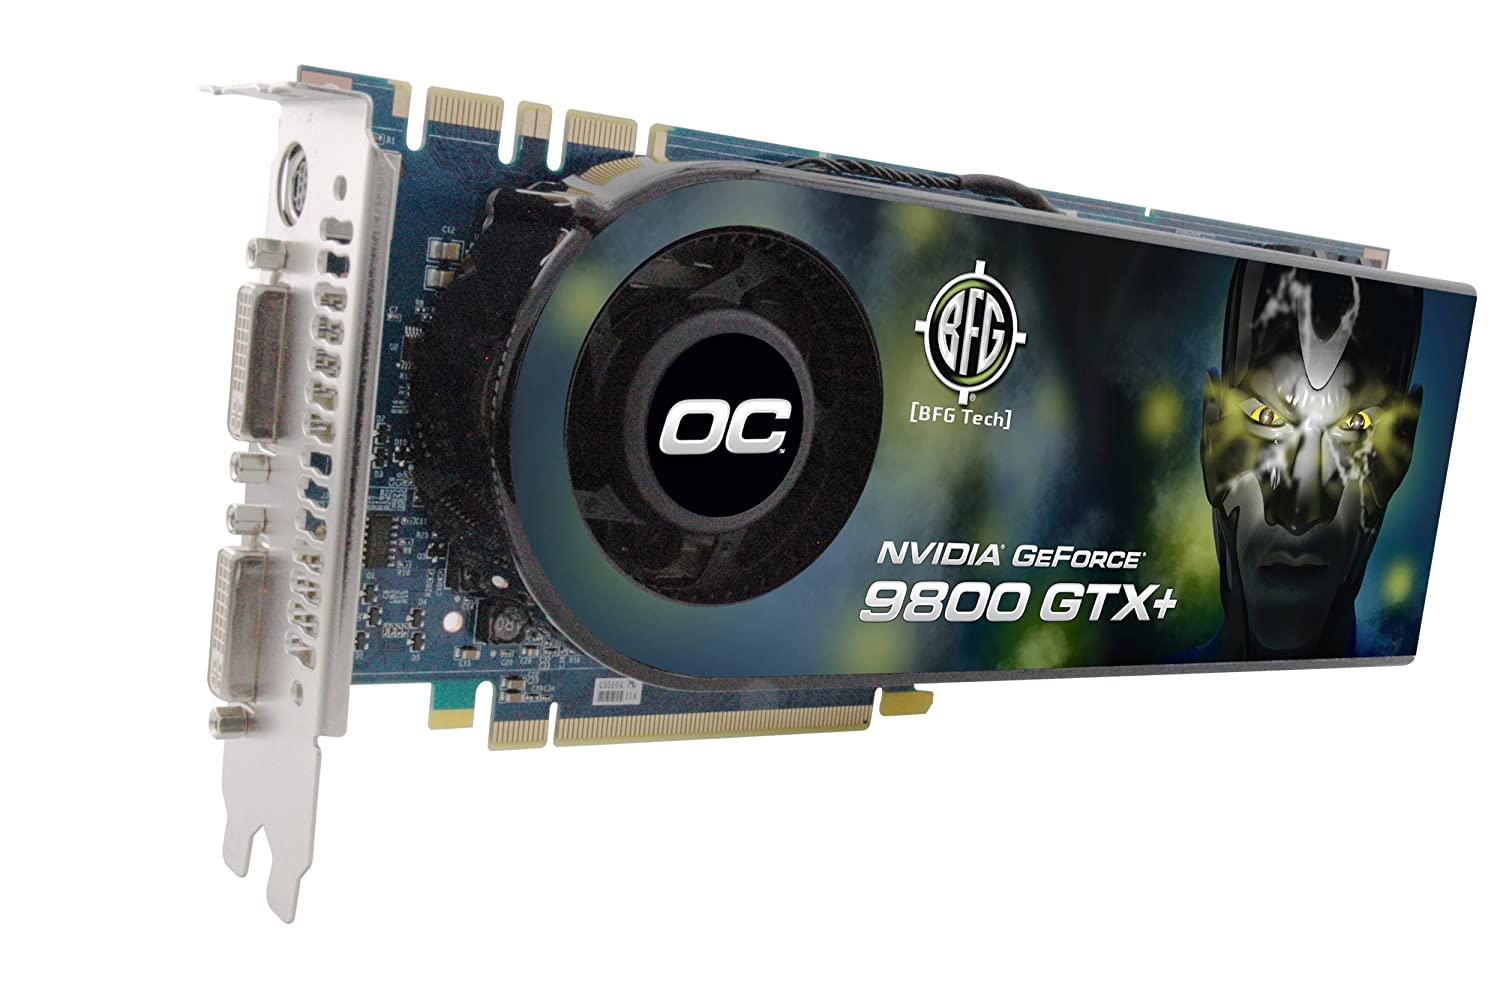 Video card GeForce 9800 GTX: review, features, reviews 55